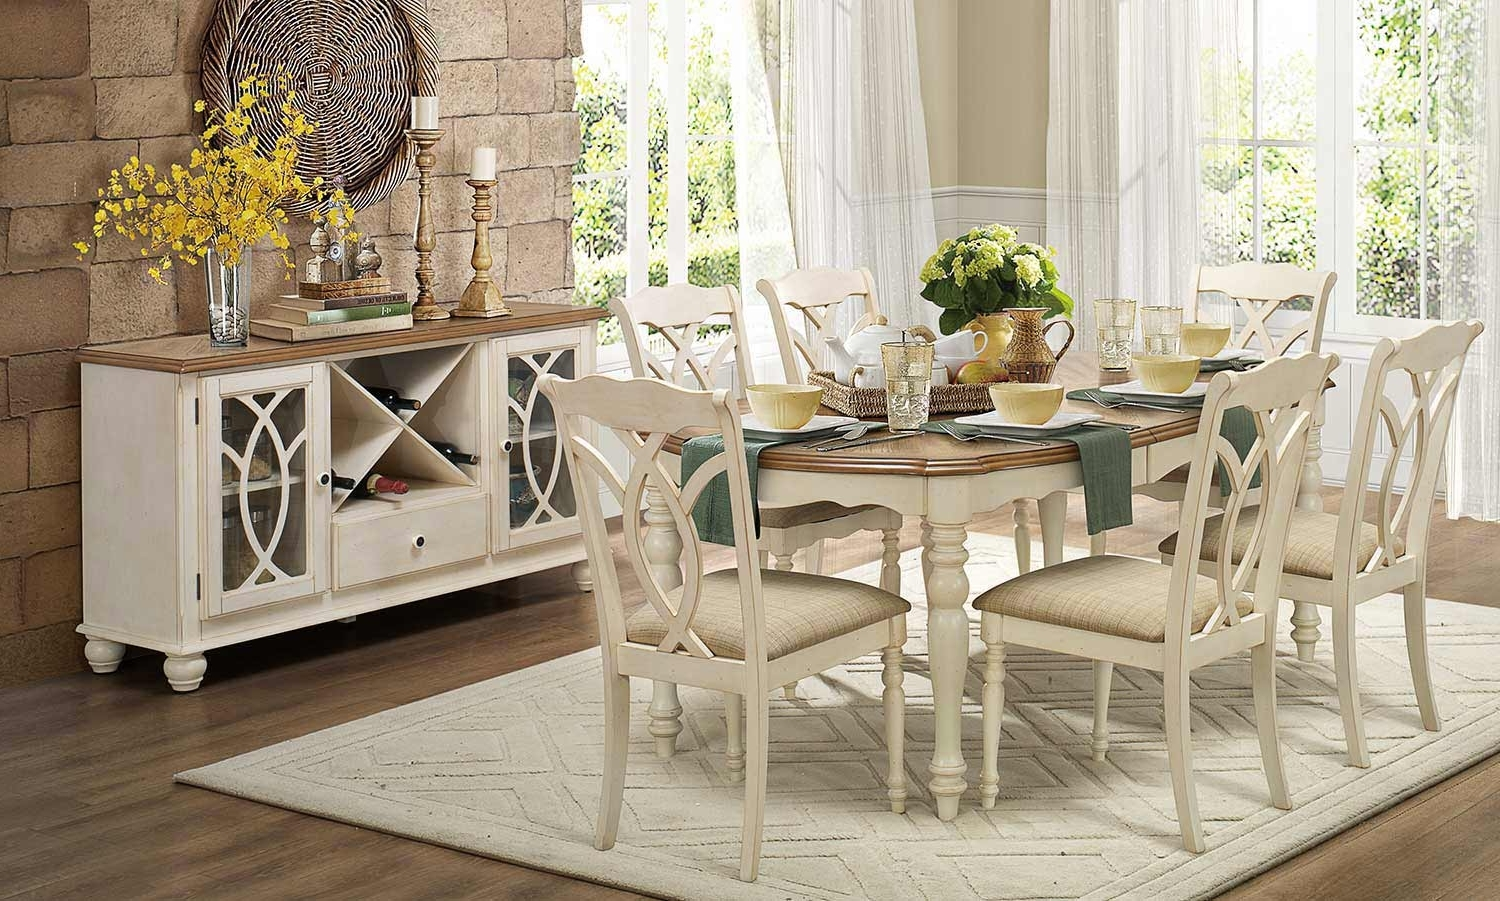 Homelegance Azalea 7Pc Antique White Dining Table Set Dallas Tx Inside Widely Used White Dining Sets (View 7 of 25)